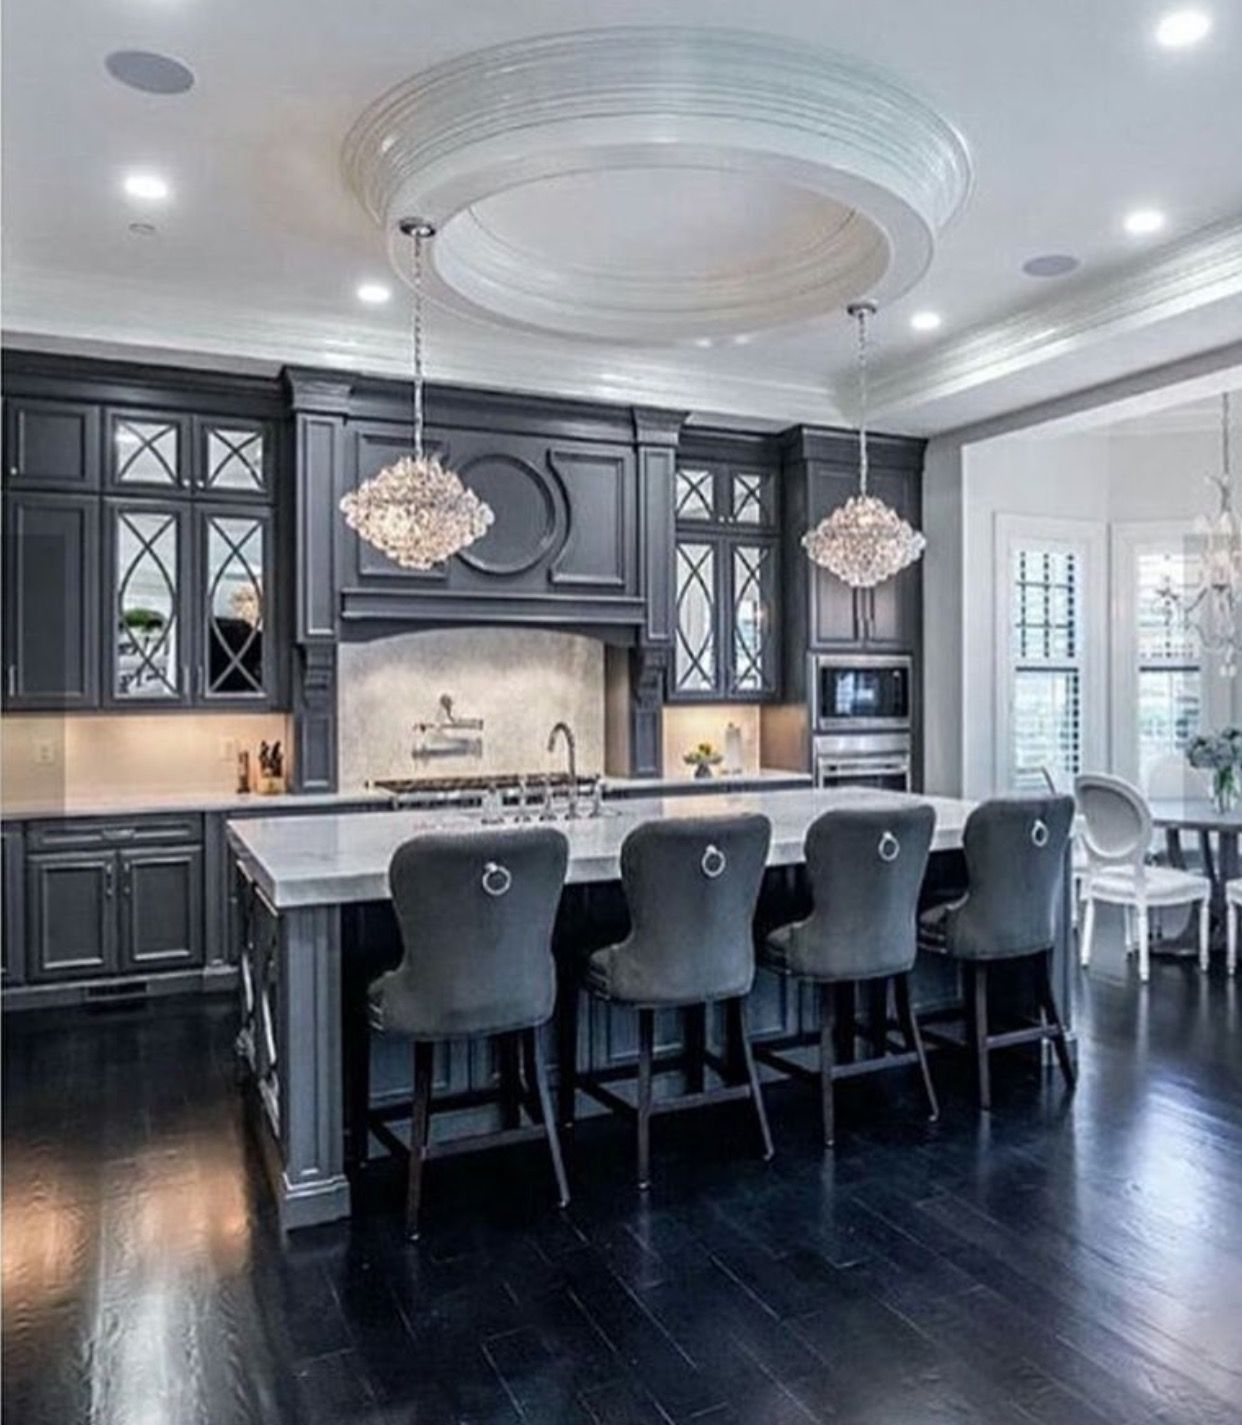 Grey Kitchen Accessories: Pin By Dee Khokhar On BEAUTY. In 2019